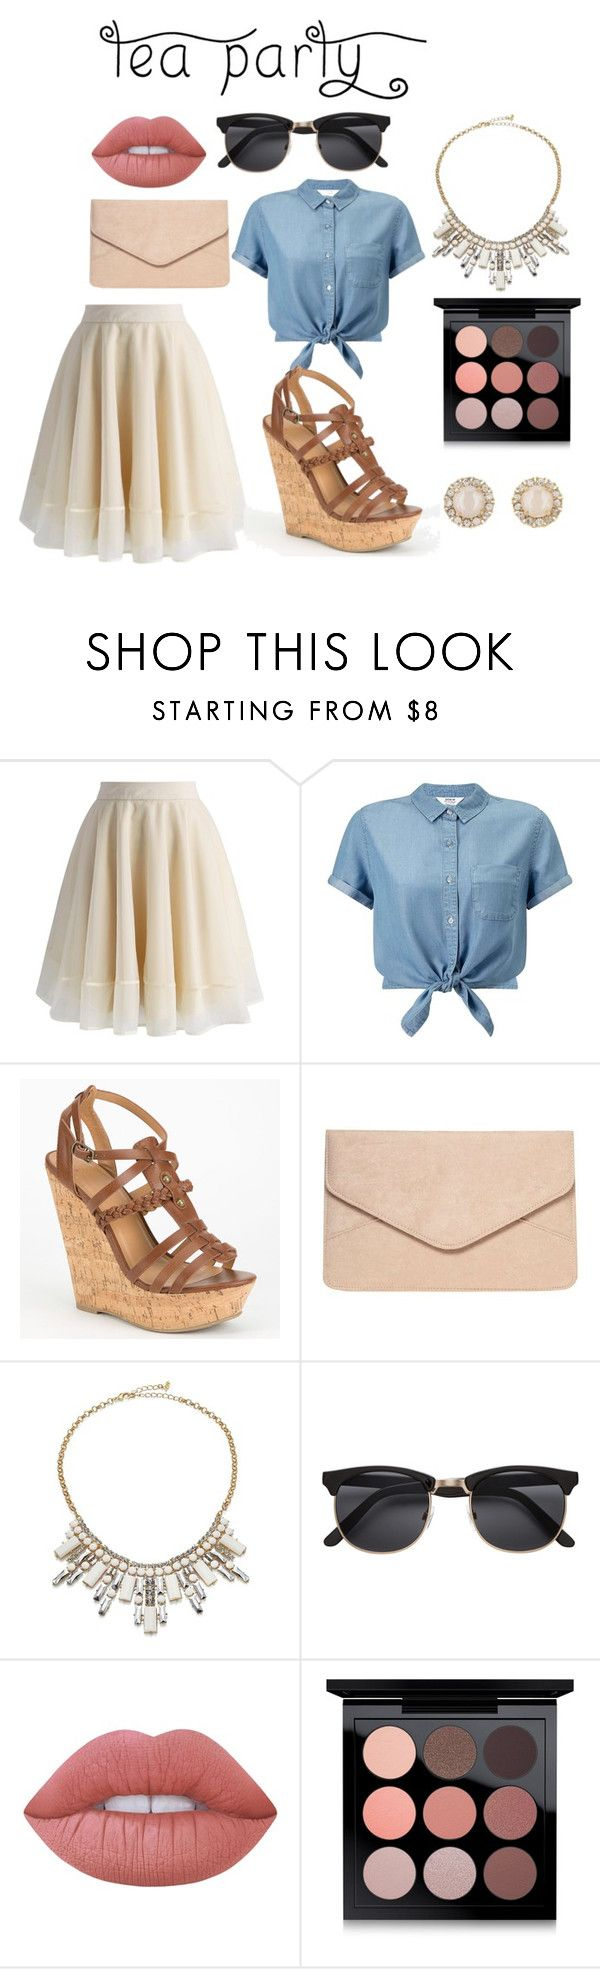 """""""Summer Times"""" by blackmagic24101 on Polyvore featuring Chicwish, Miss Selfridge, Delicious, Dorothy Perkins, ABS by Allen Schwartz, Lime Crime, MAC Cosmetics, Kate Spade and teaparty"""